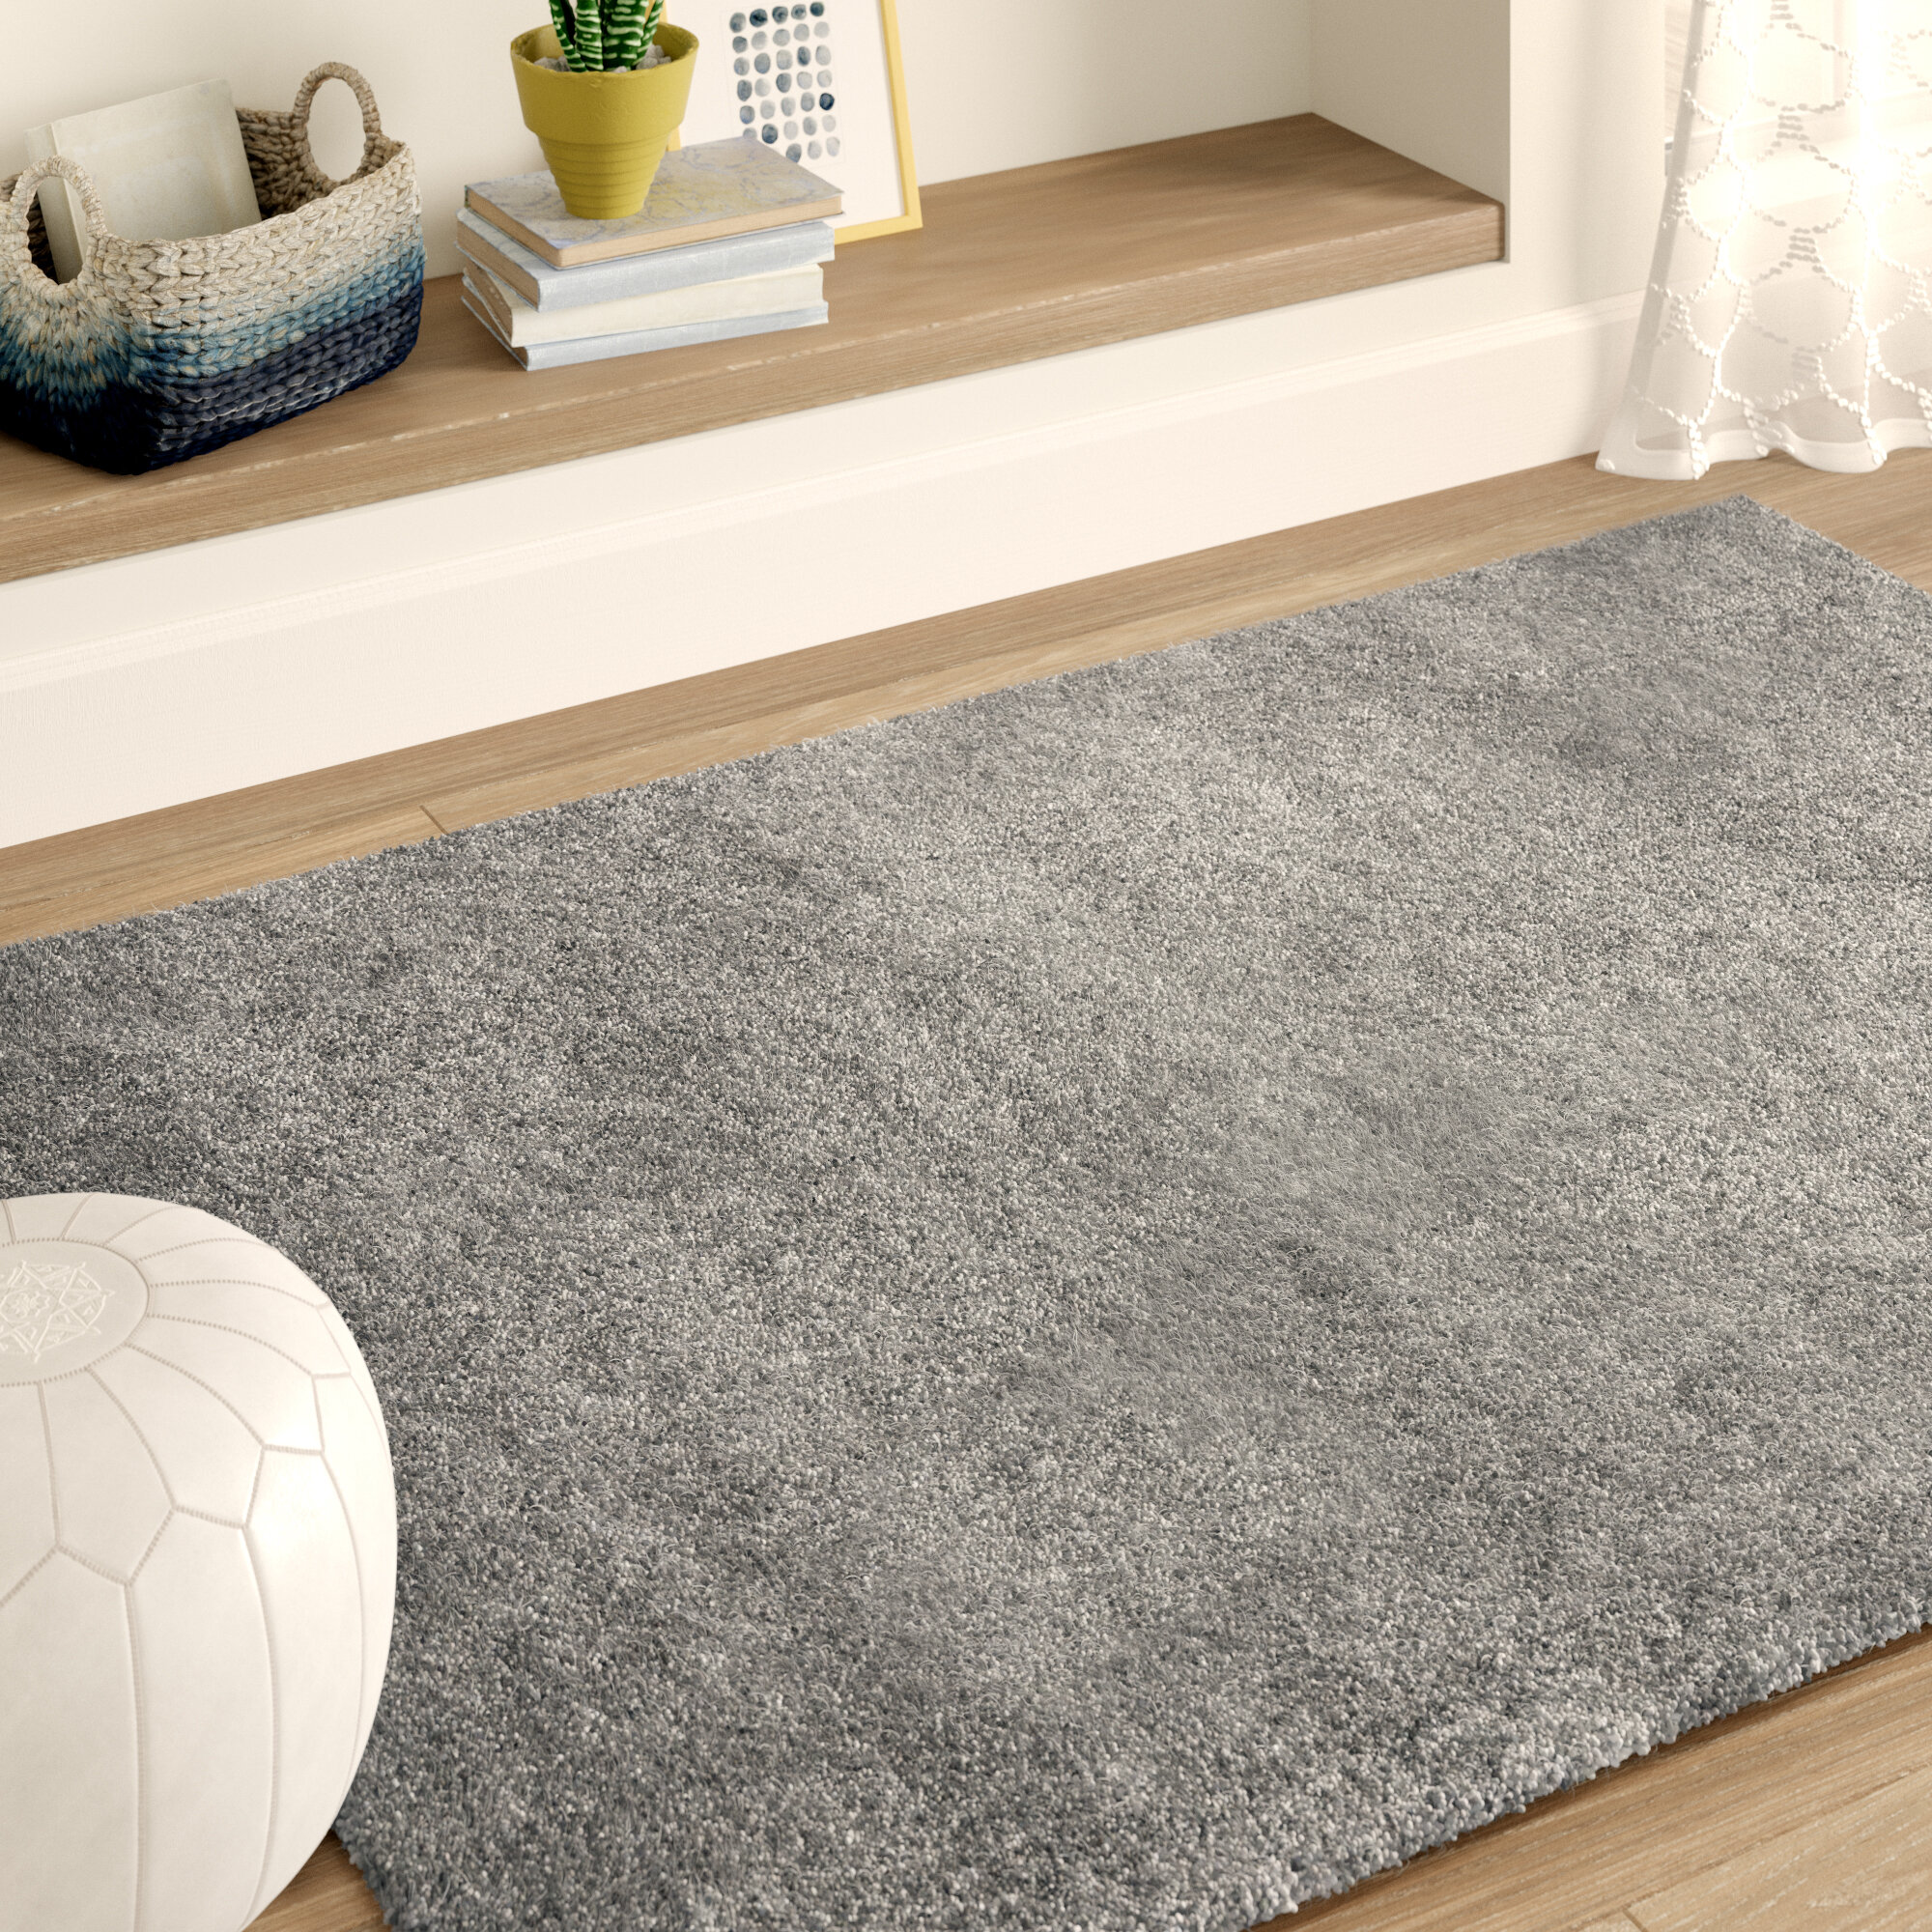 Leather Area Rugs You Ll Love In 2021 Wayfair